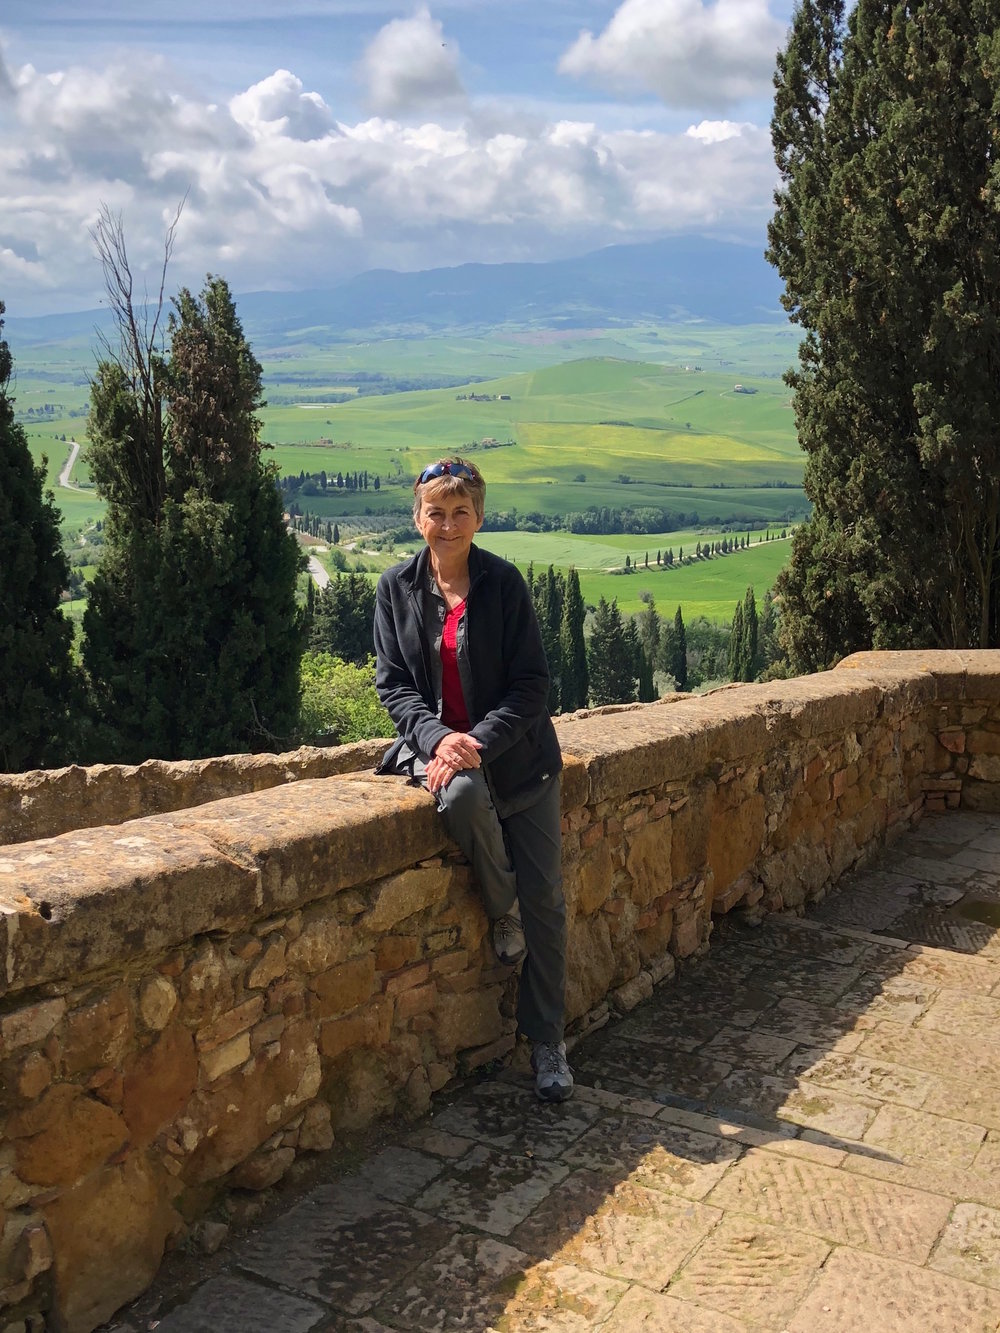 Enjoying the views of Cyprus trees from Pienza during our small group tour of Tuscany